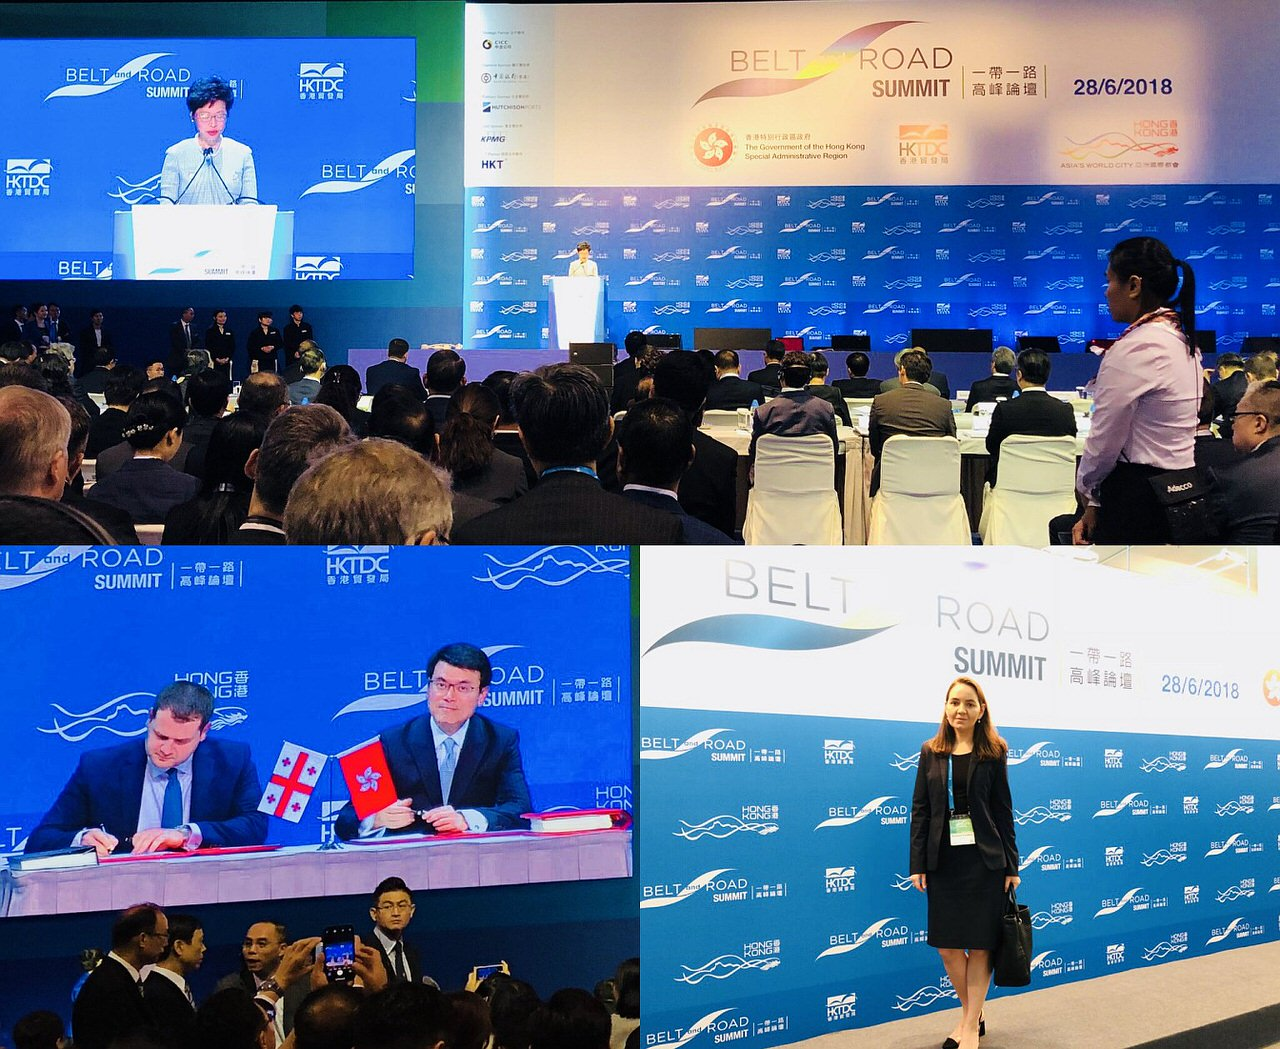 Belt and Road Summit 2018